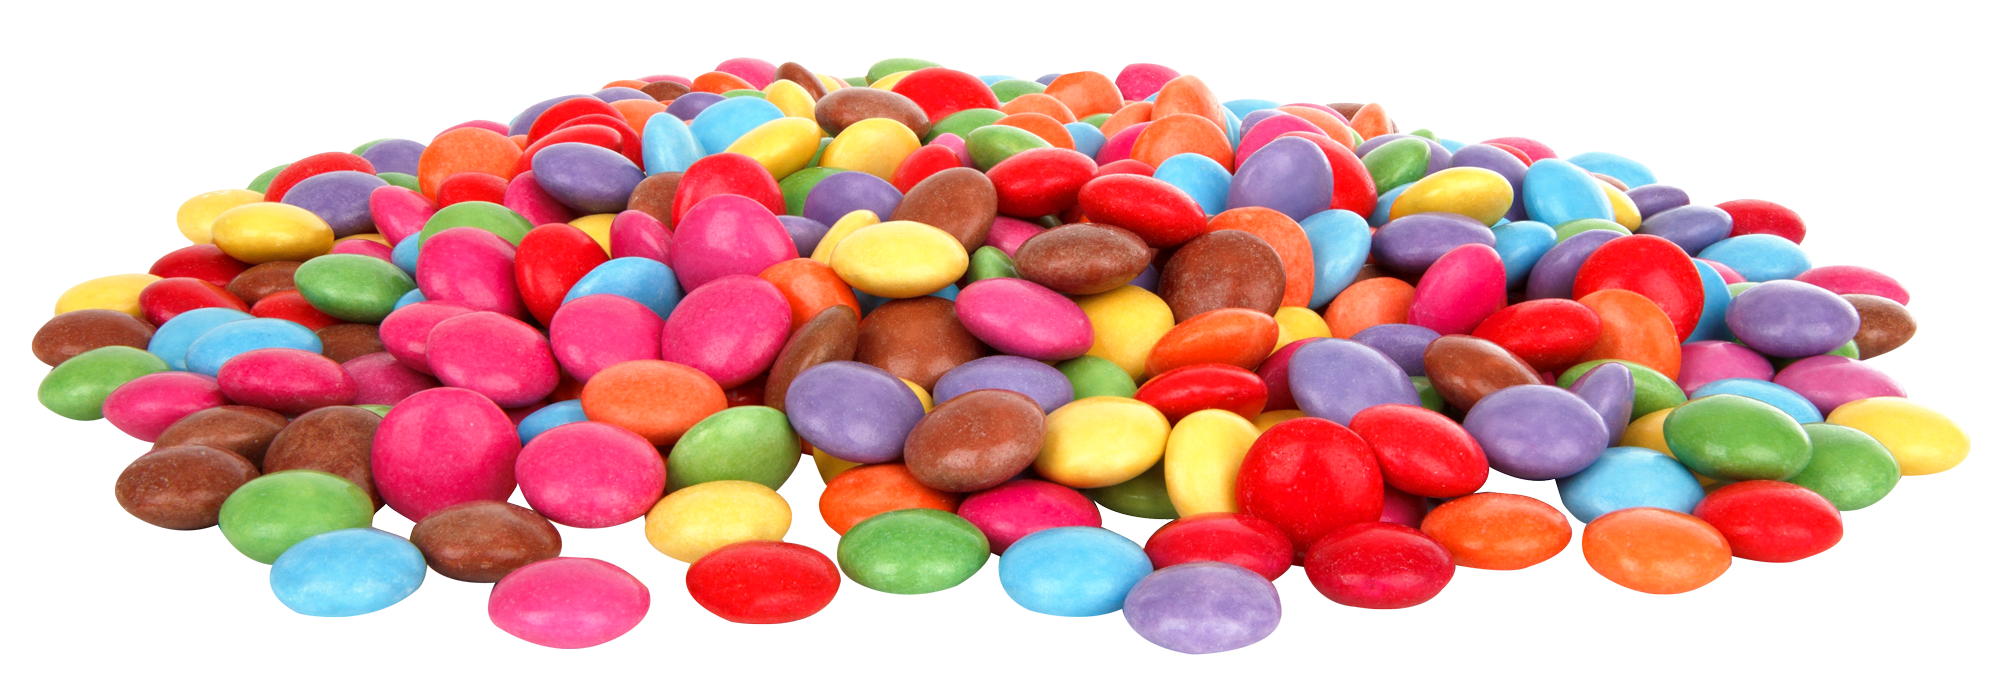 Candy PNG Transparent Images.